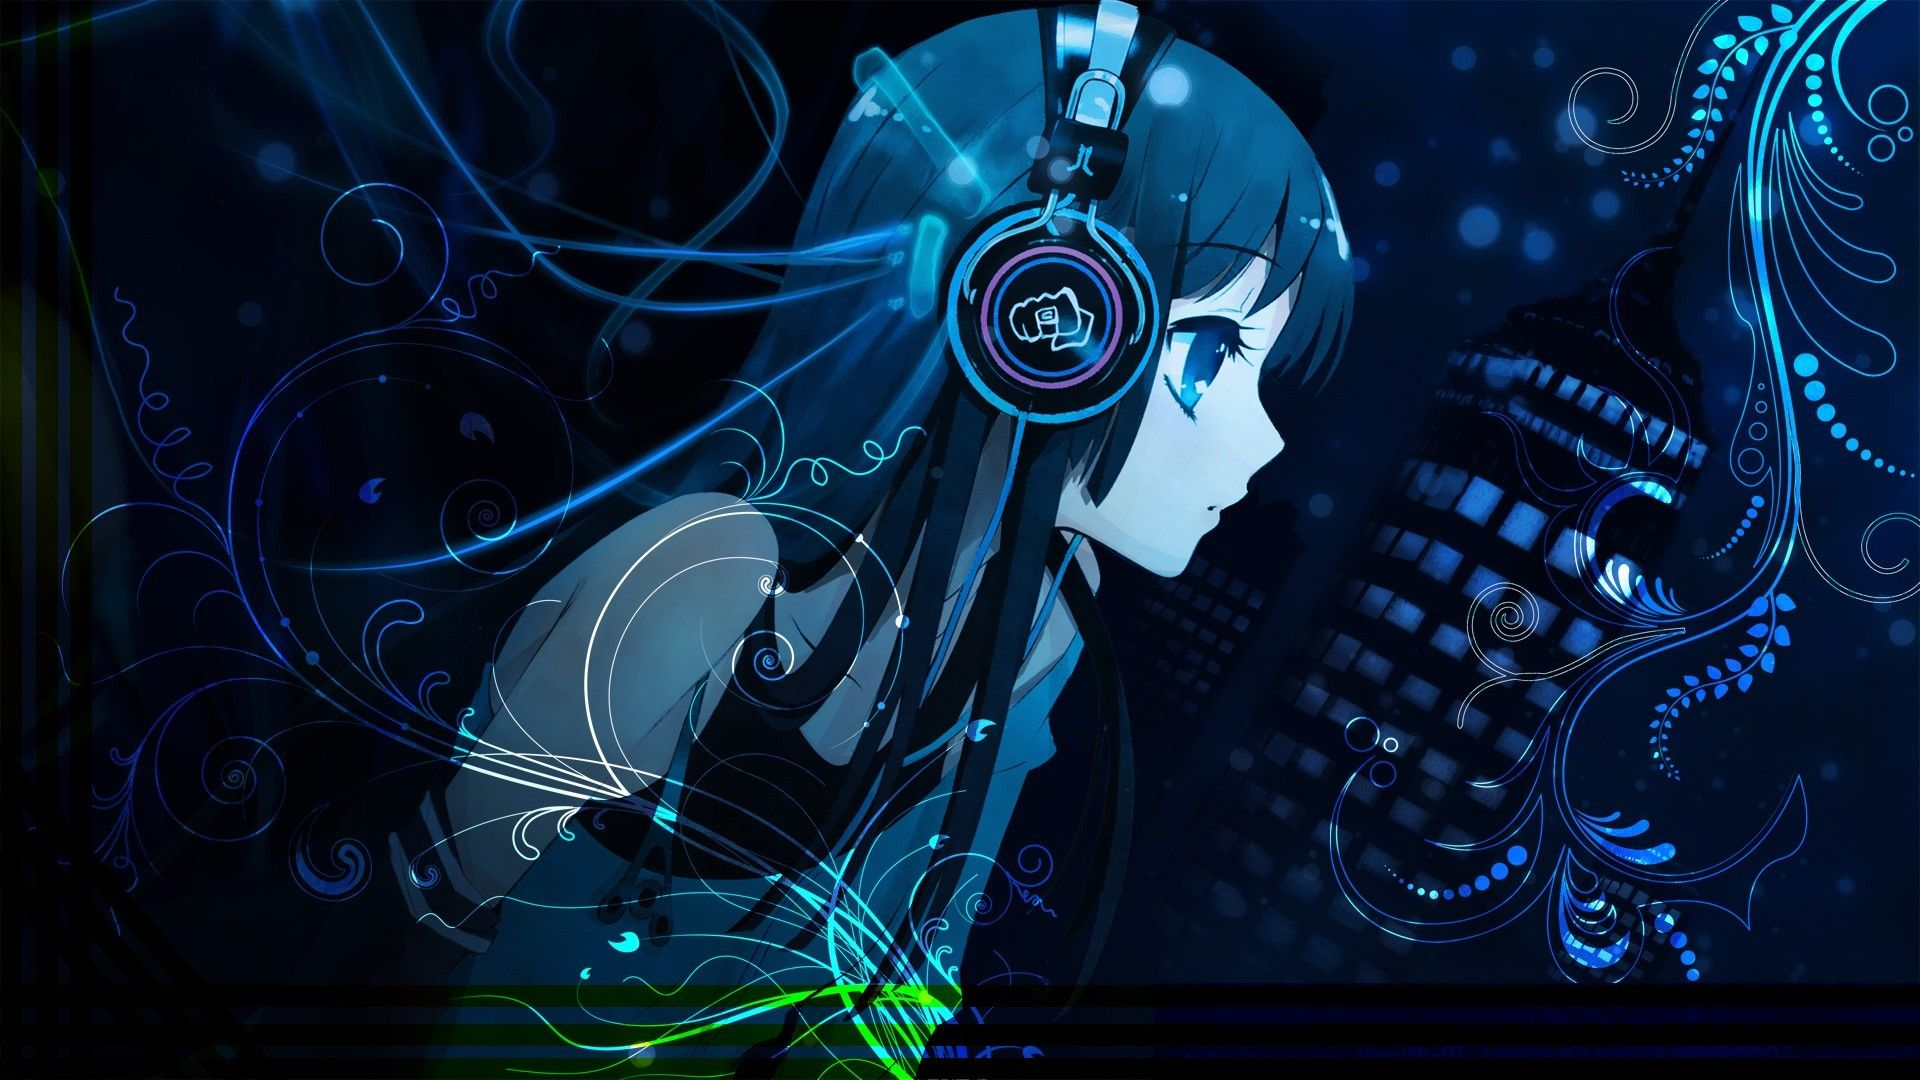 Anime music girl wallpaper in high quality anime wide hd - High quality anime pictures ...